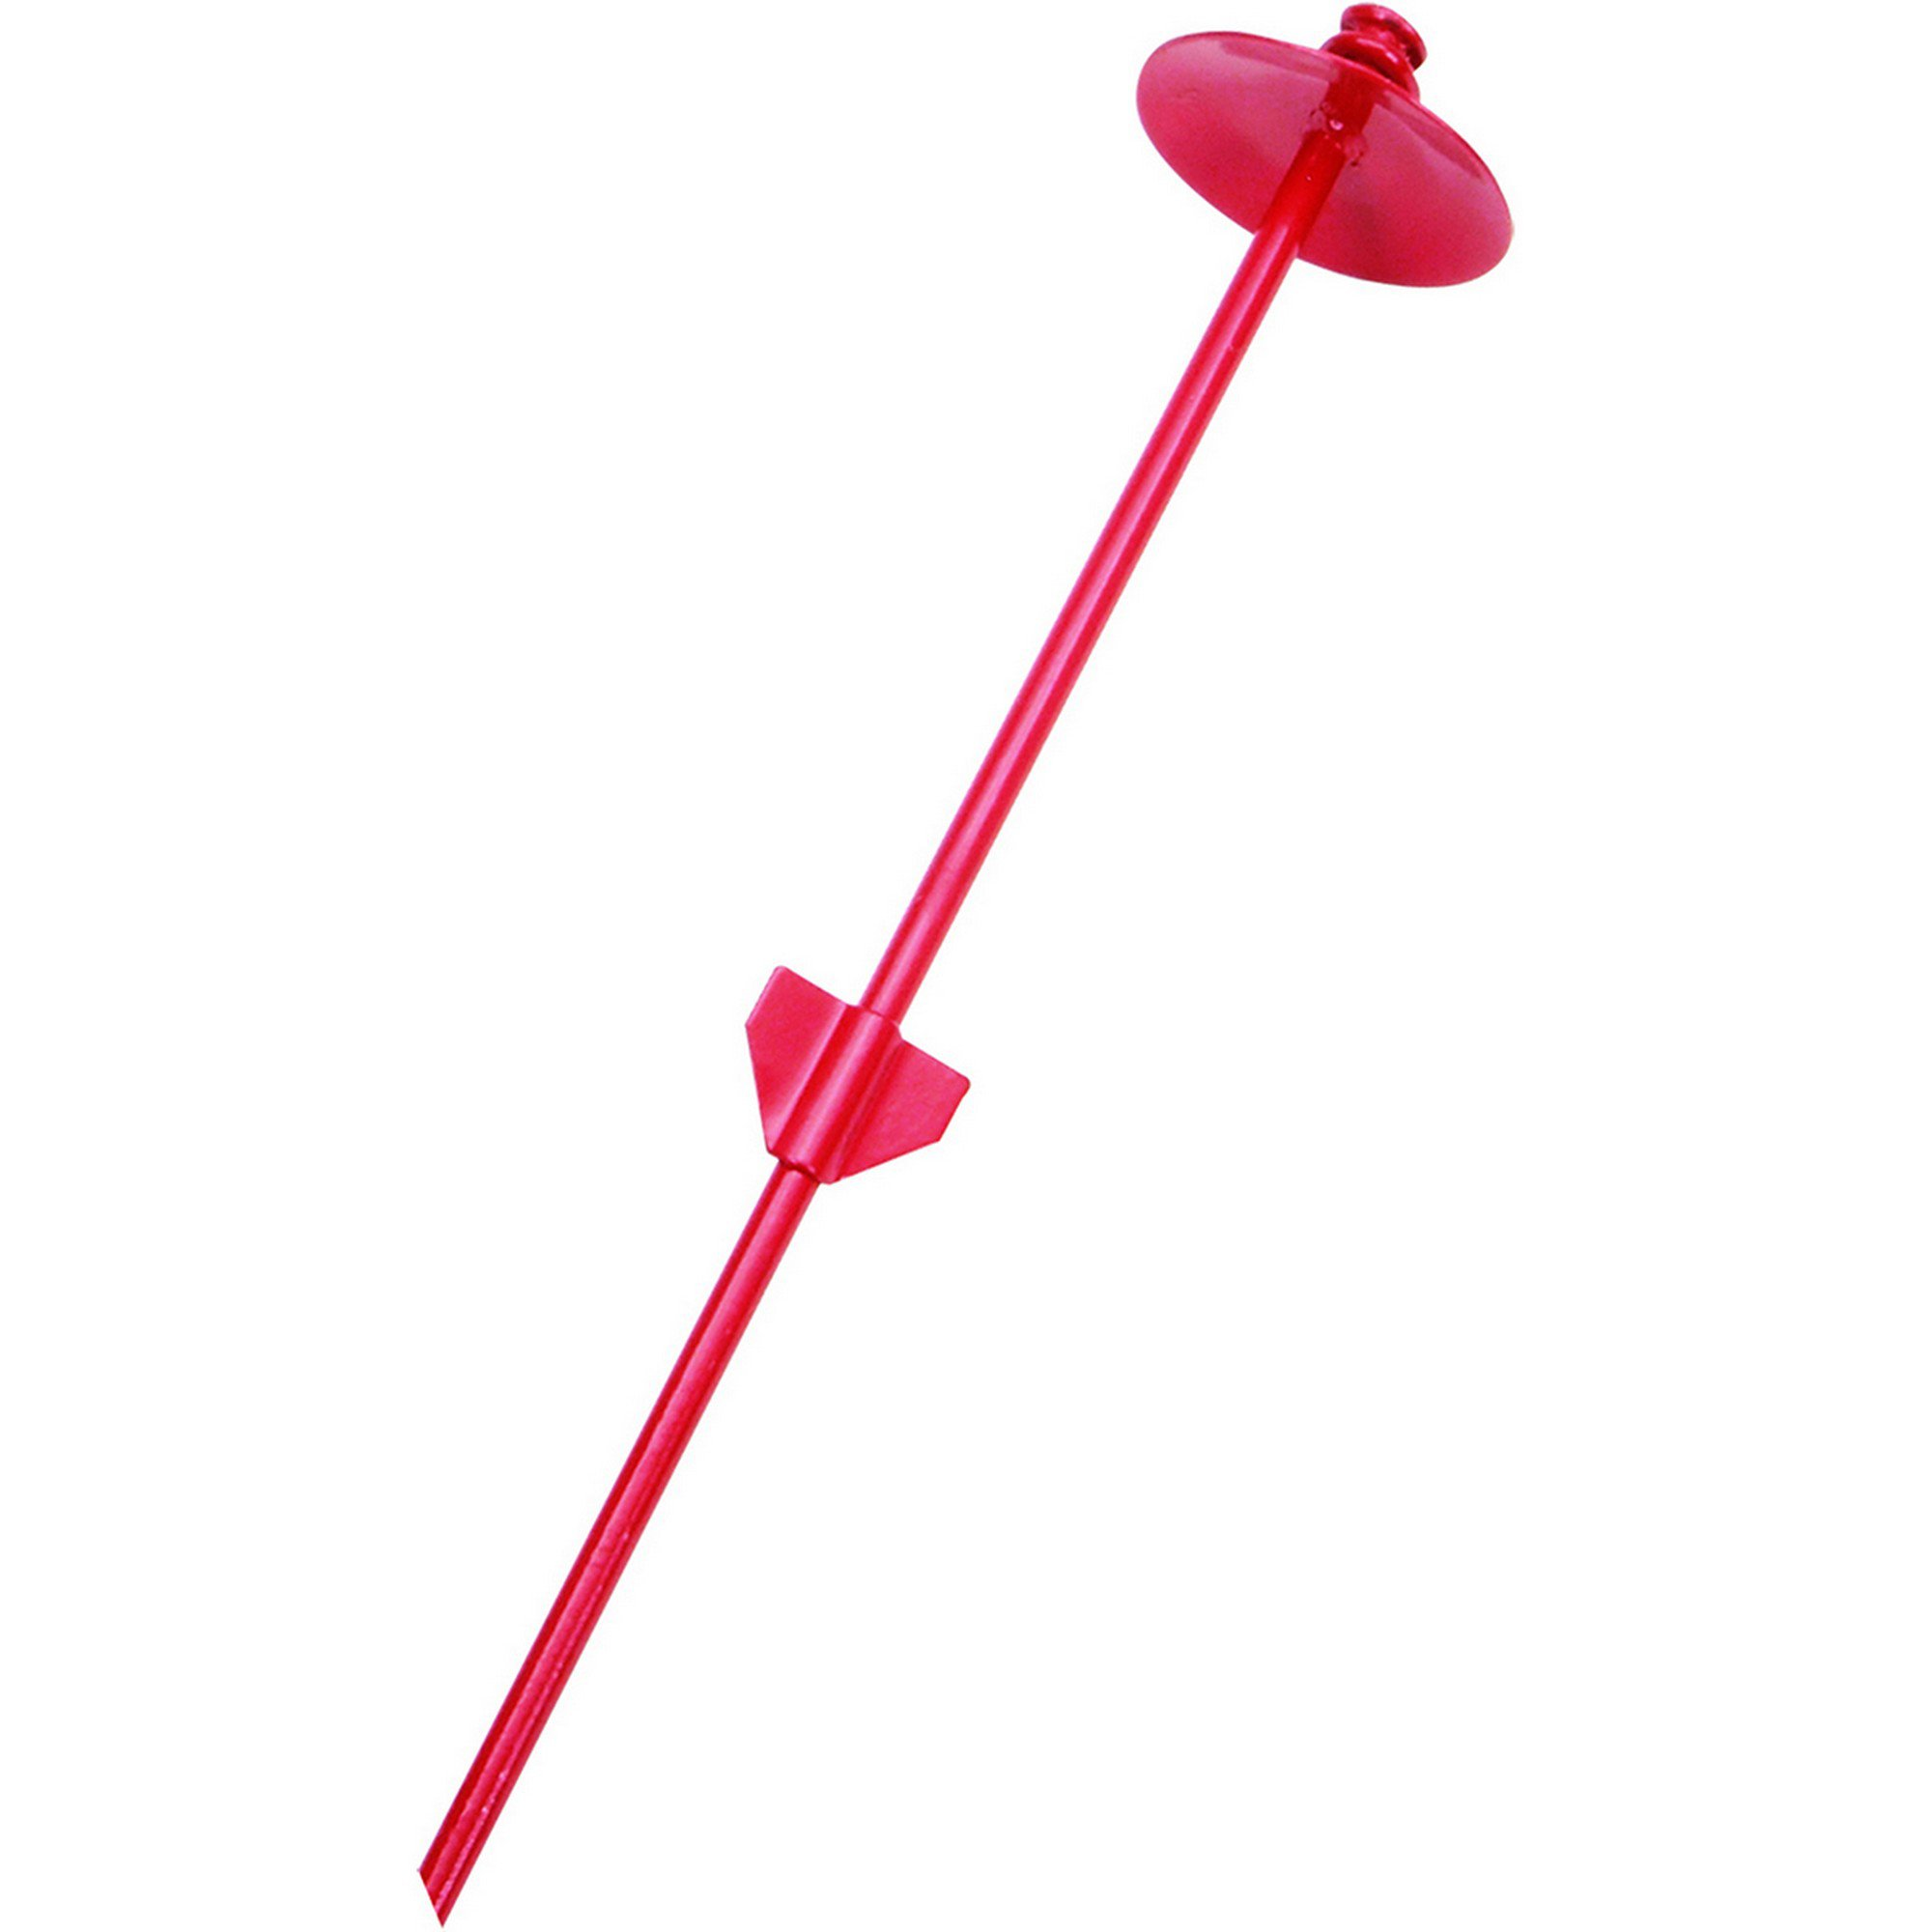 """Image of """"Petlinks System Fin Style Dome Tie Out Stake in Red, 20"""""""", Standard"""""""